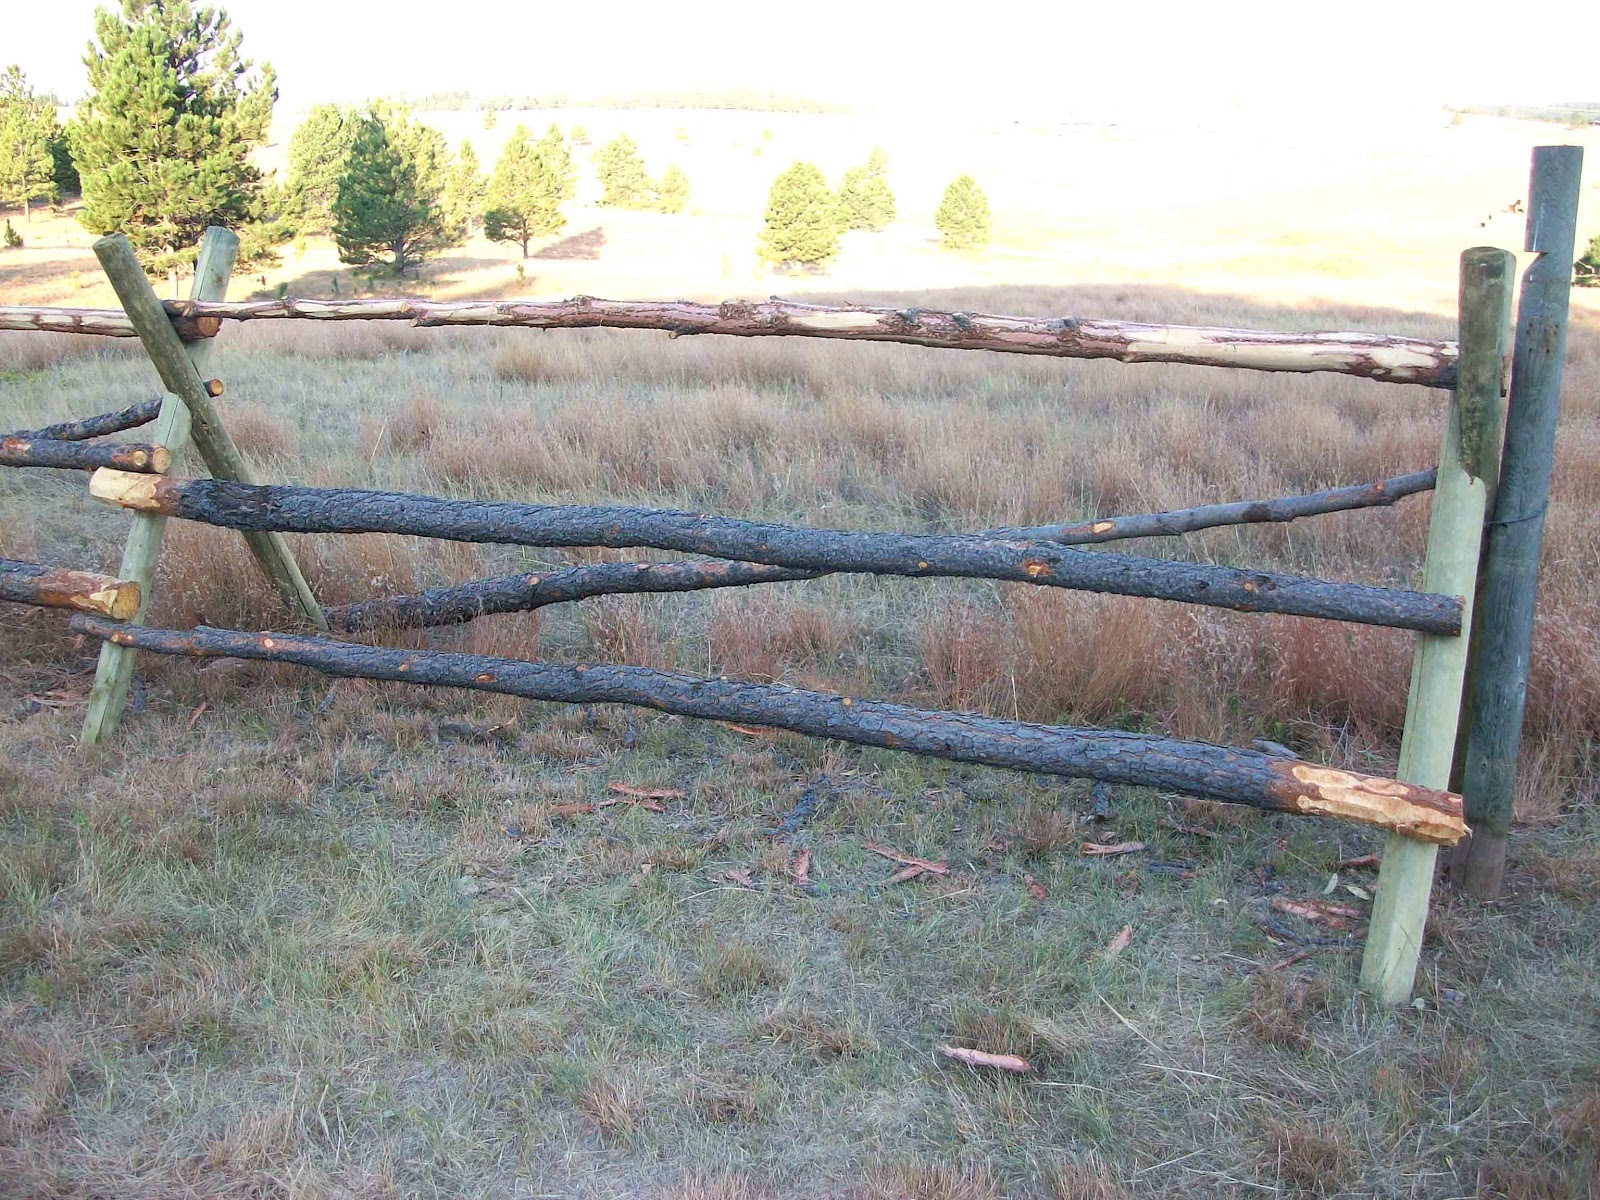 Cattle Fencing Design Homesteading wife backwoods fencing backwoods fencing workwithnaturefo